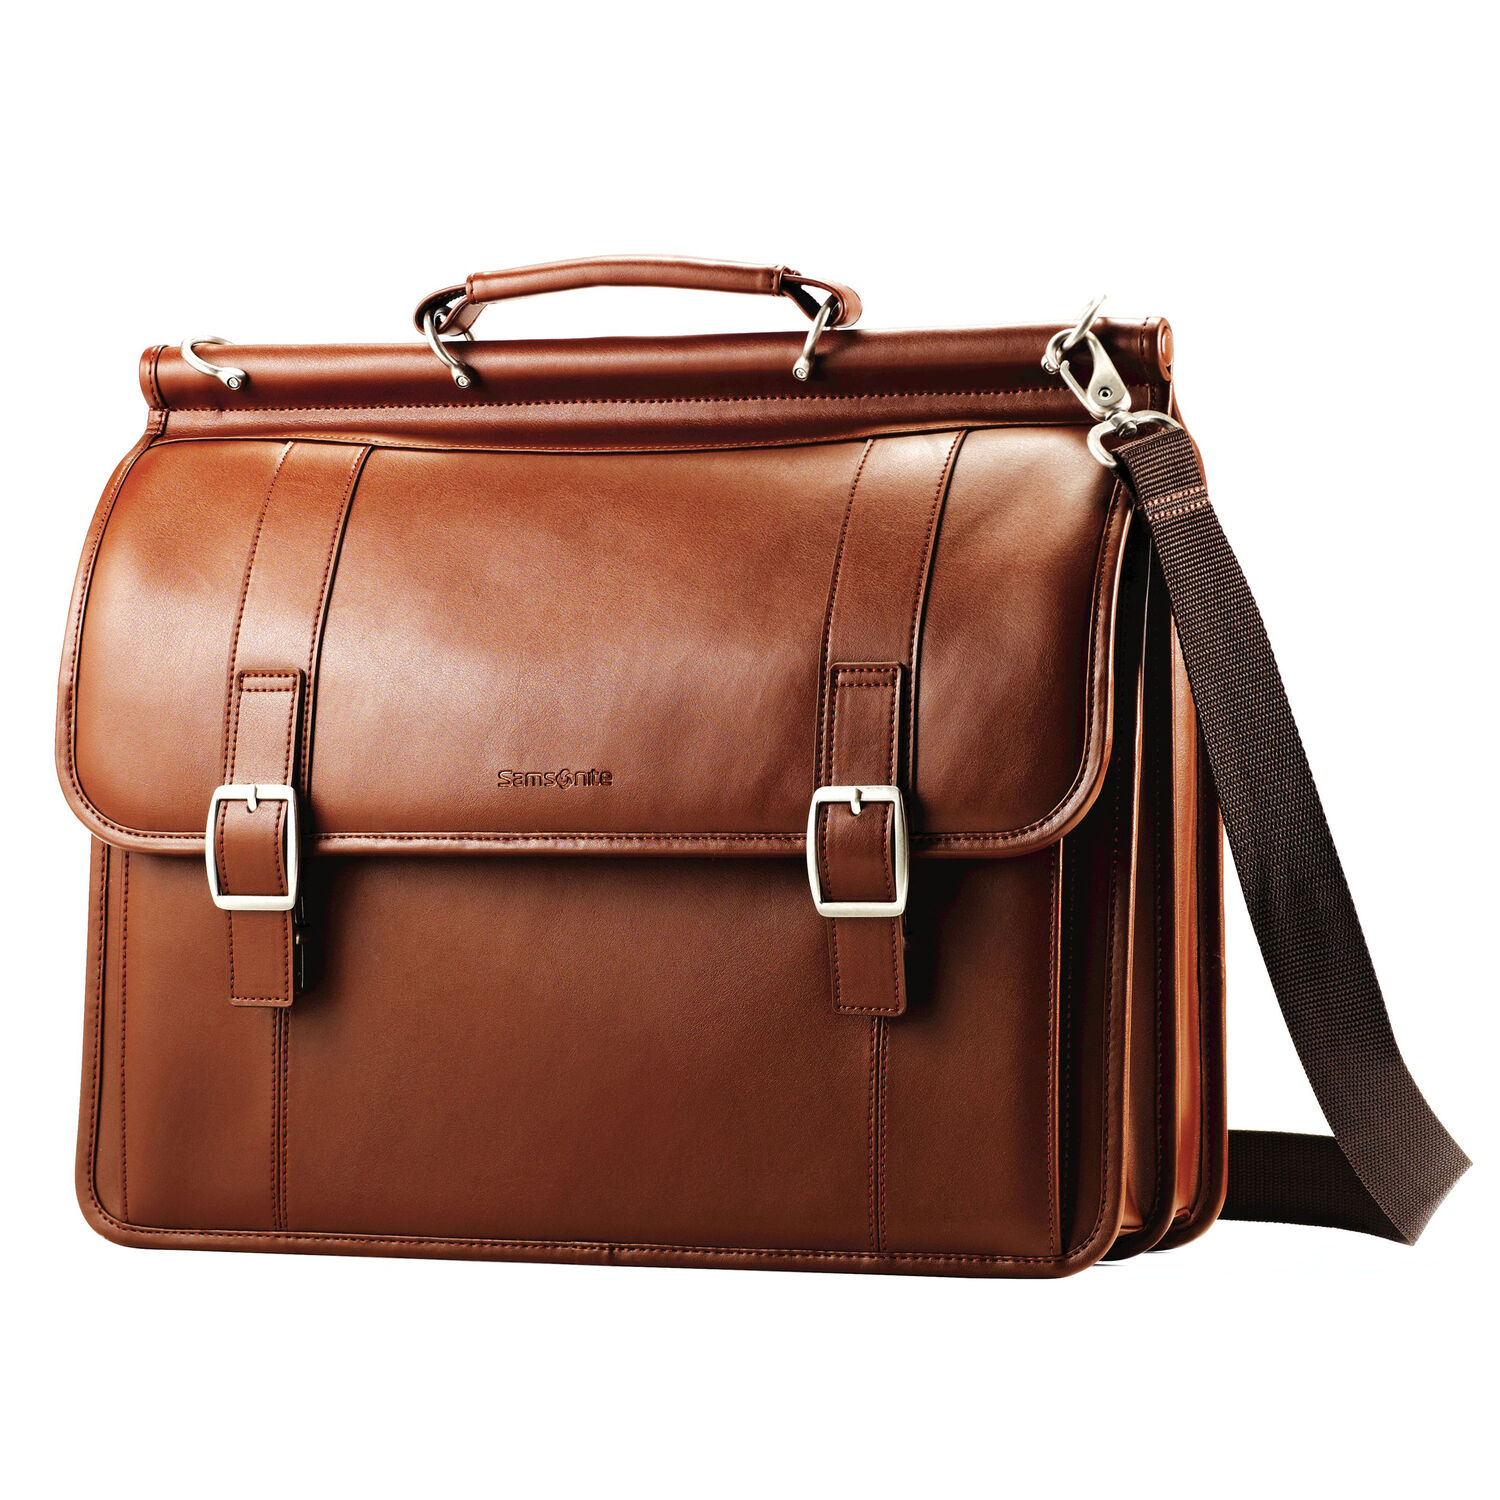 a43392b9d3f8 Samsonite Leather Dowel Flapover Business Case